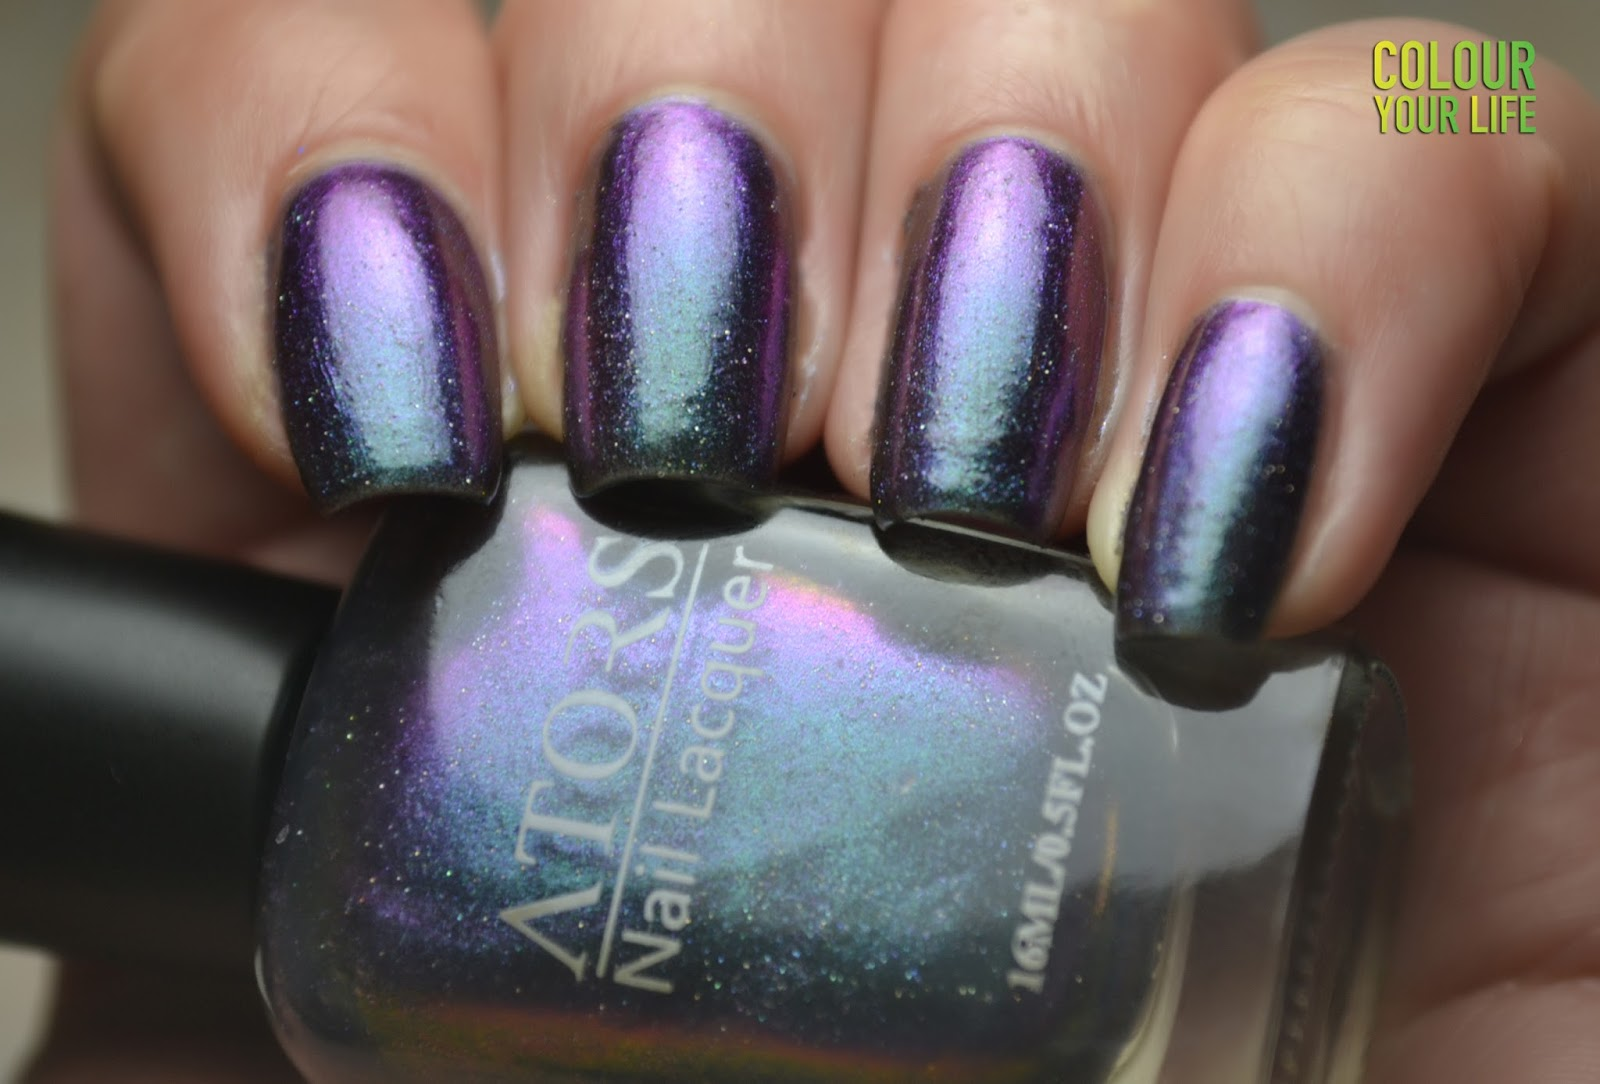 Colour your life: Multichrome nail polish review